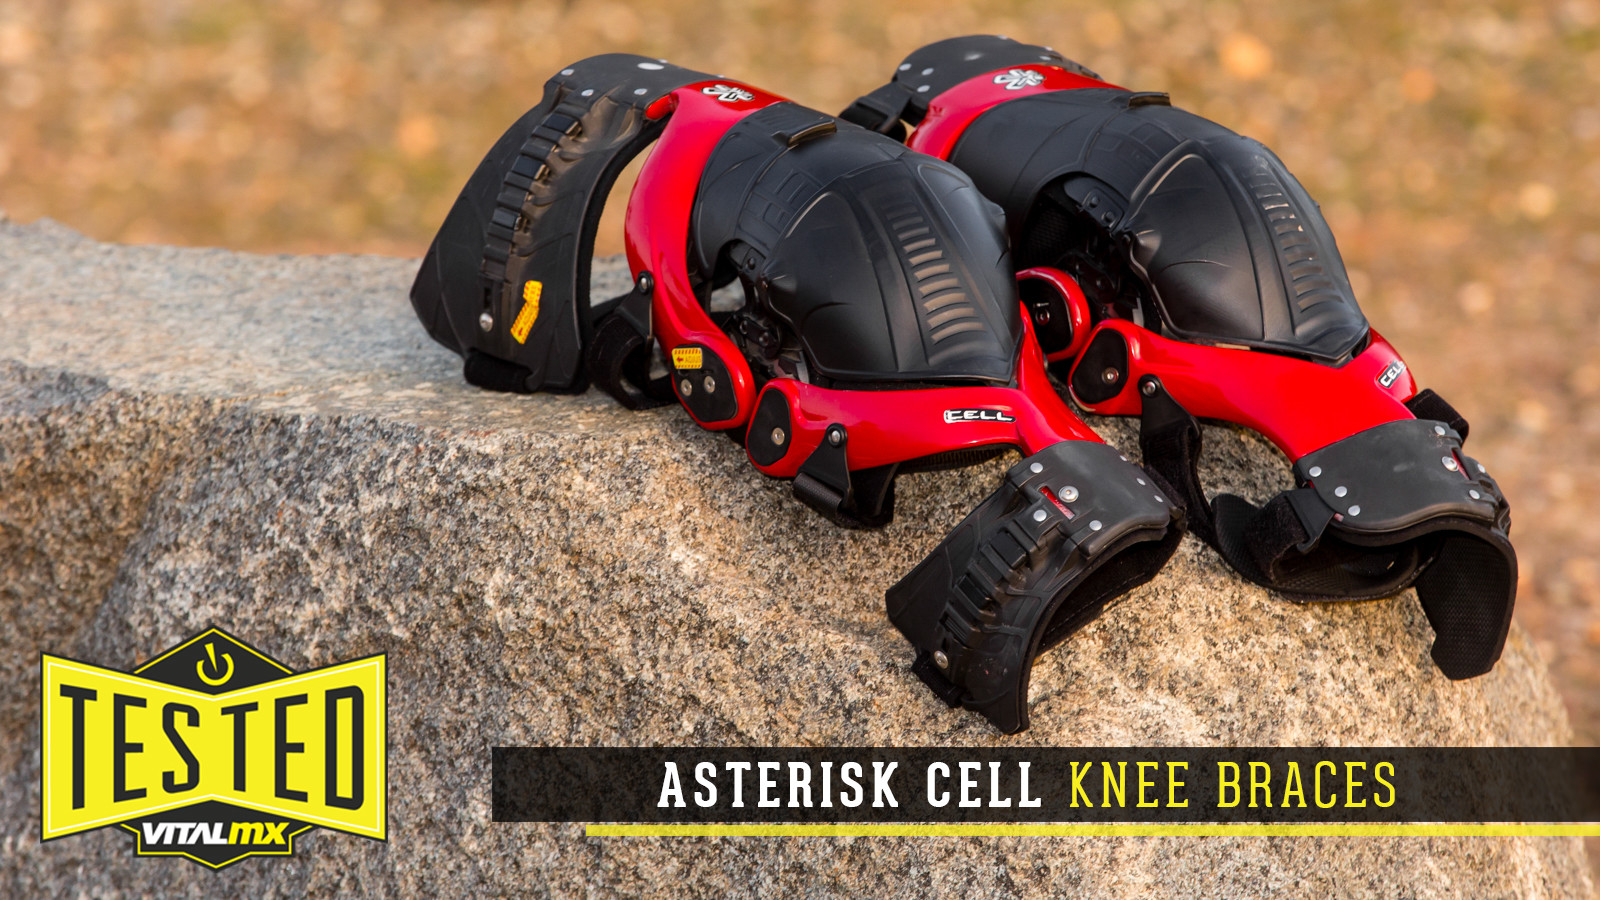 Tested: Asterisk Cell Knee Braces